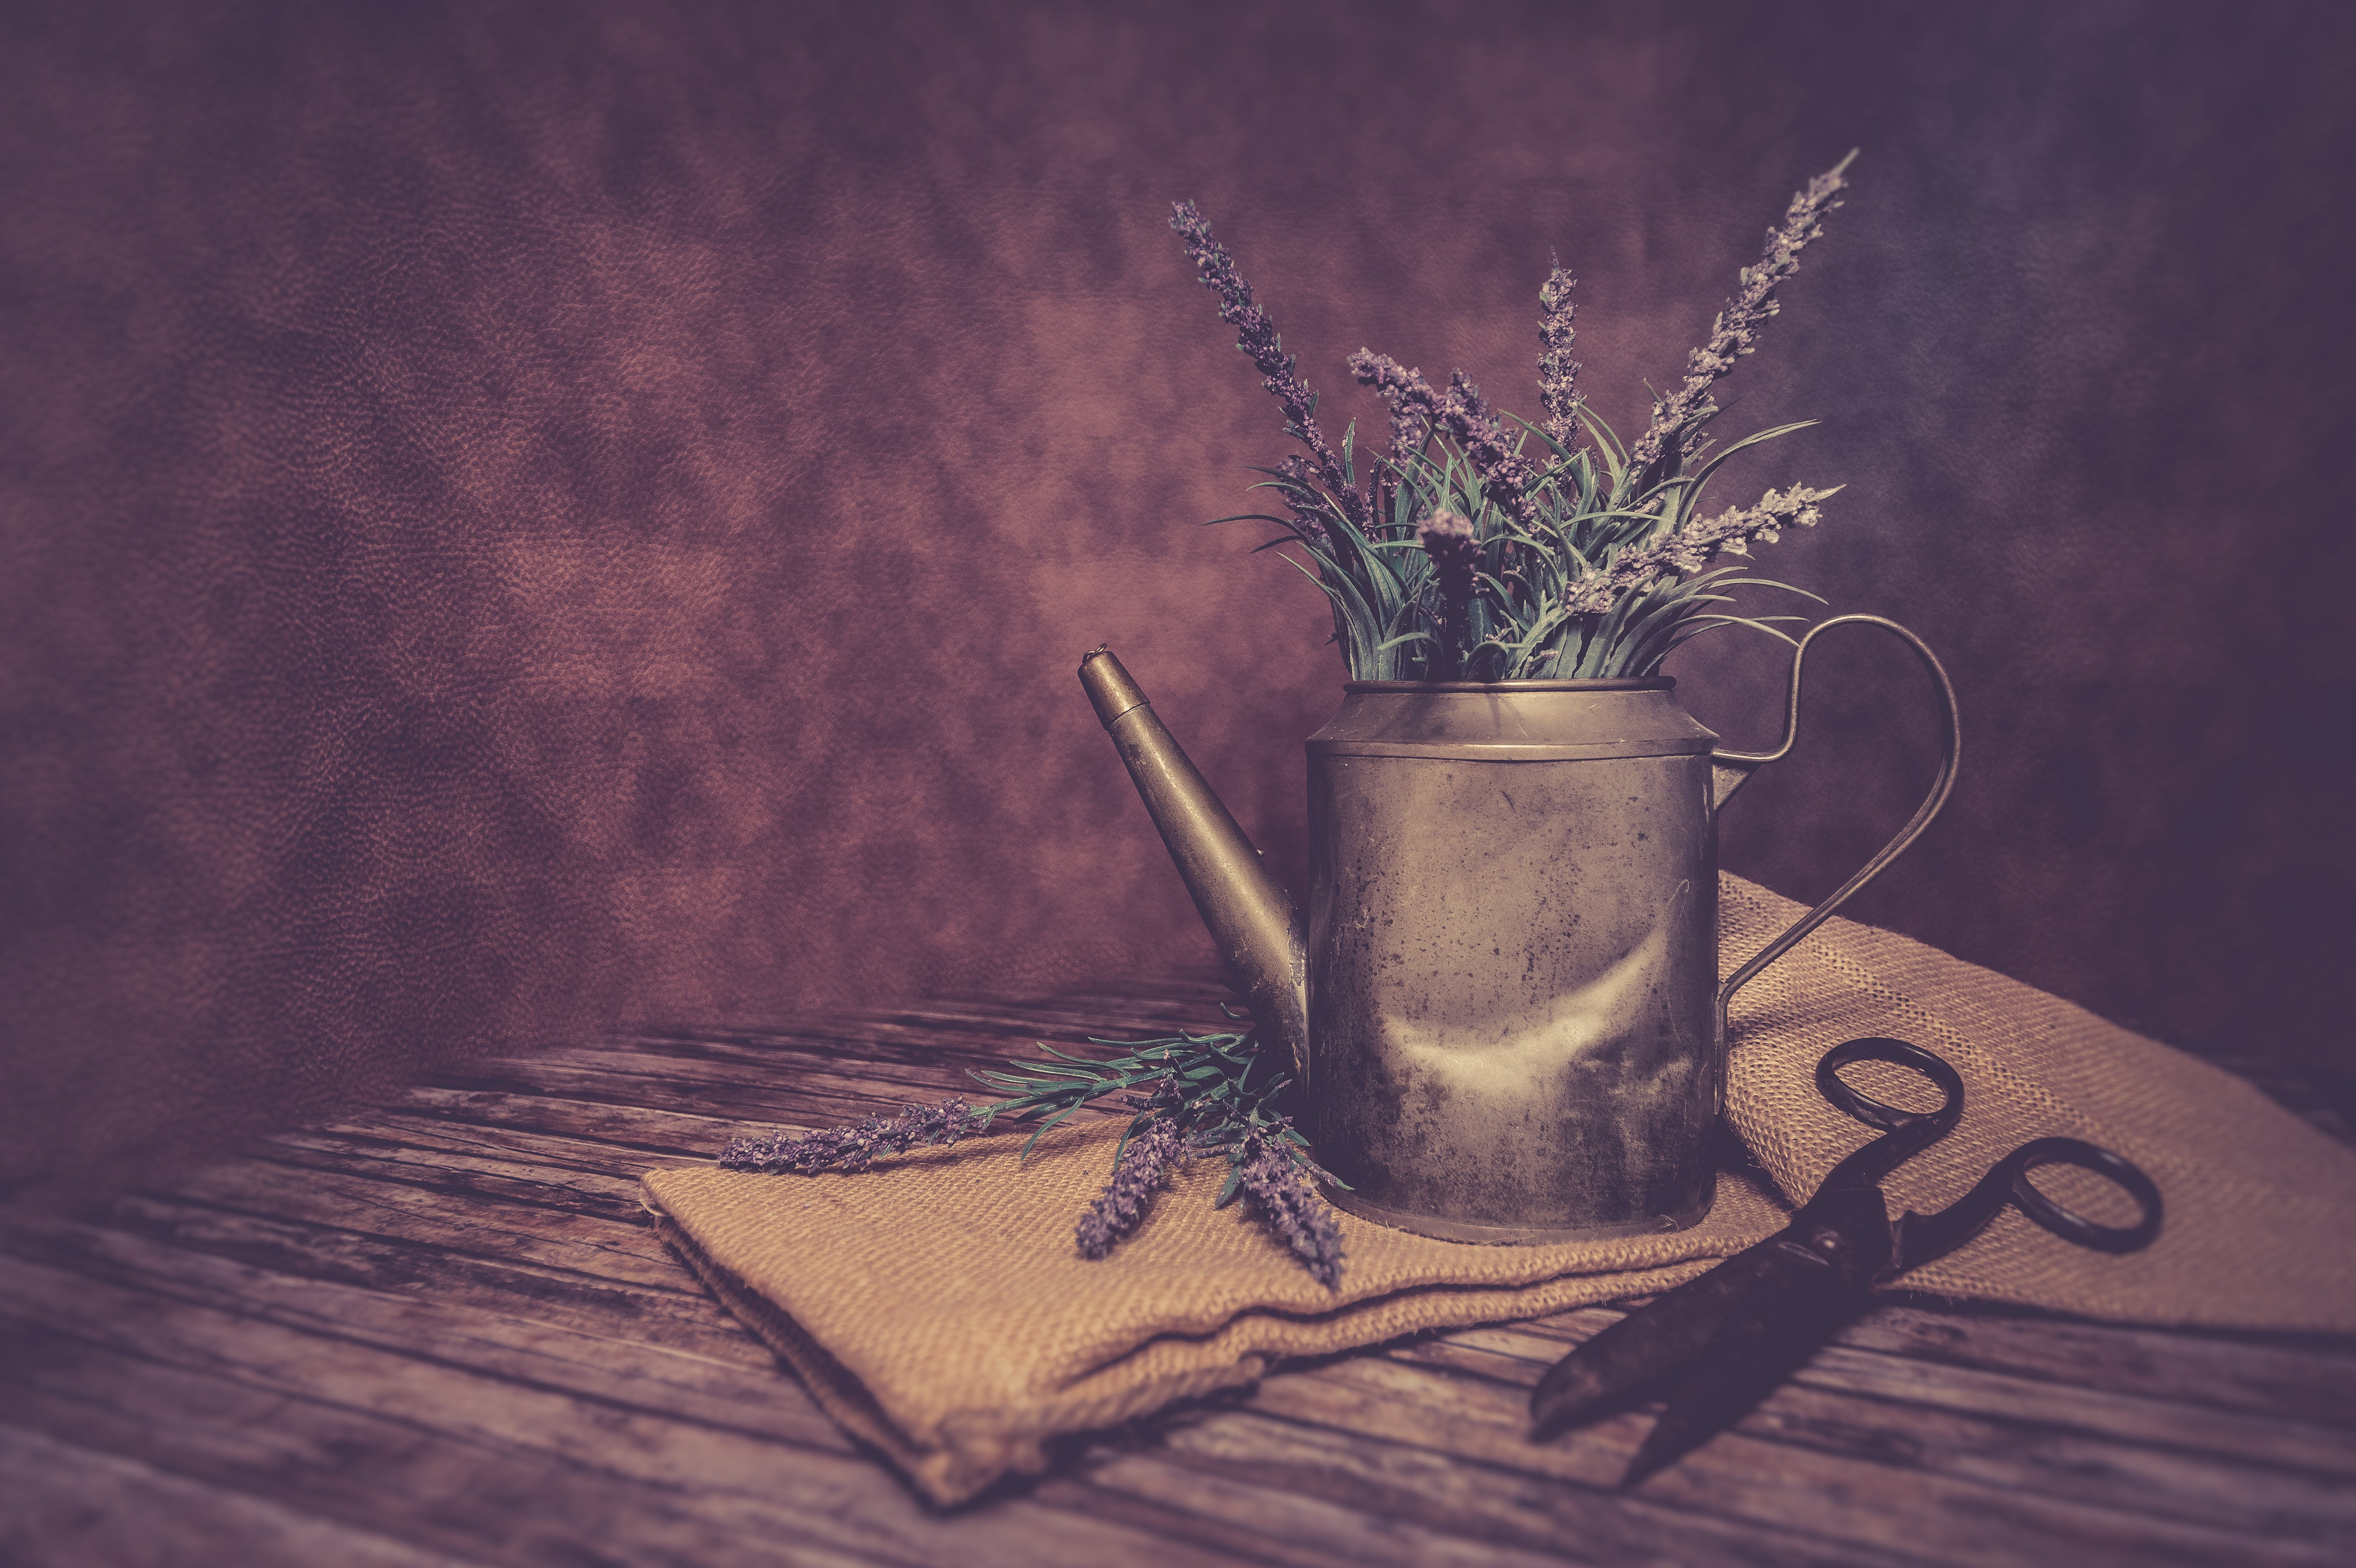 Free stock photo of flowers, vintage, table, rustic